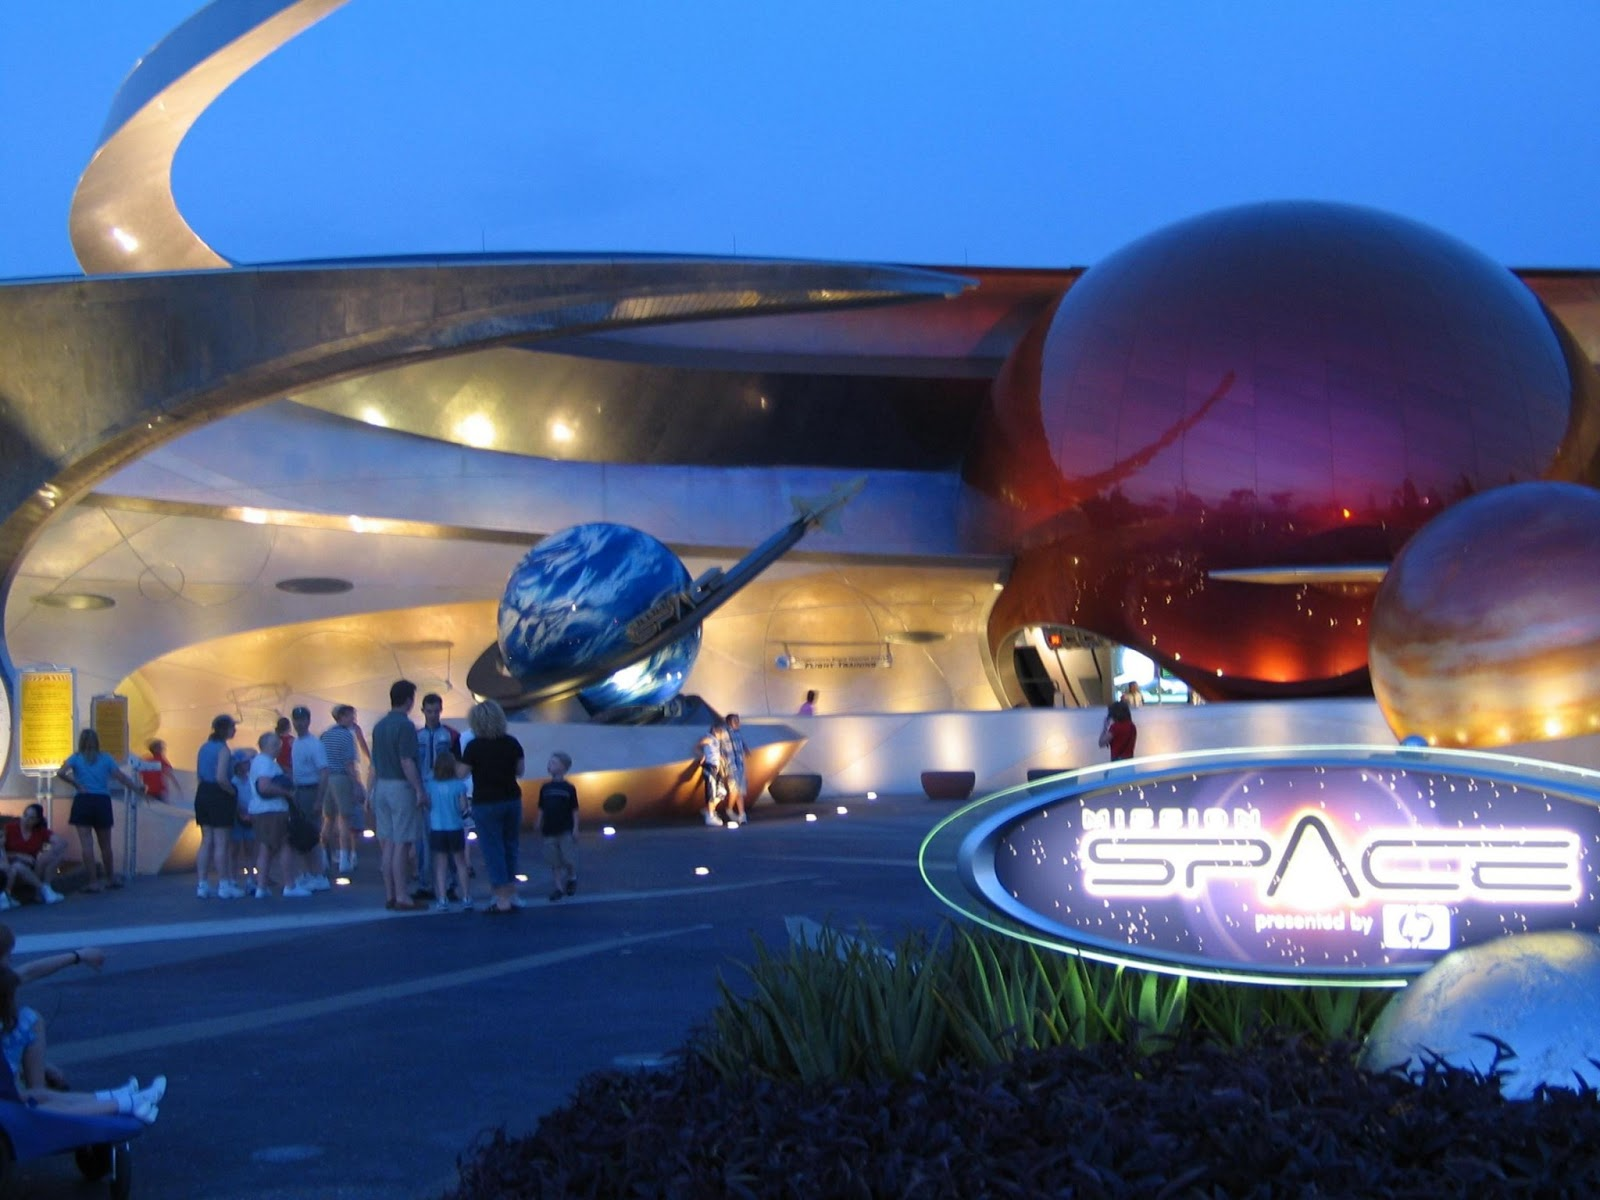 Mission Space Green vs Orange - Pics about space